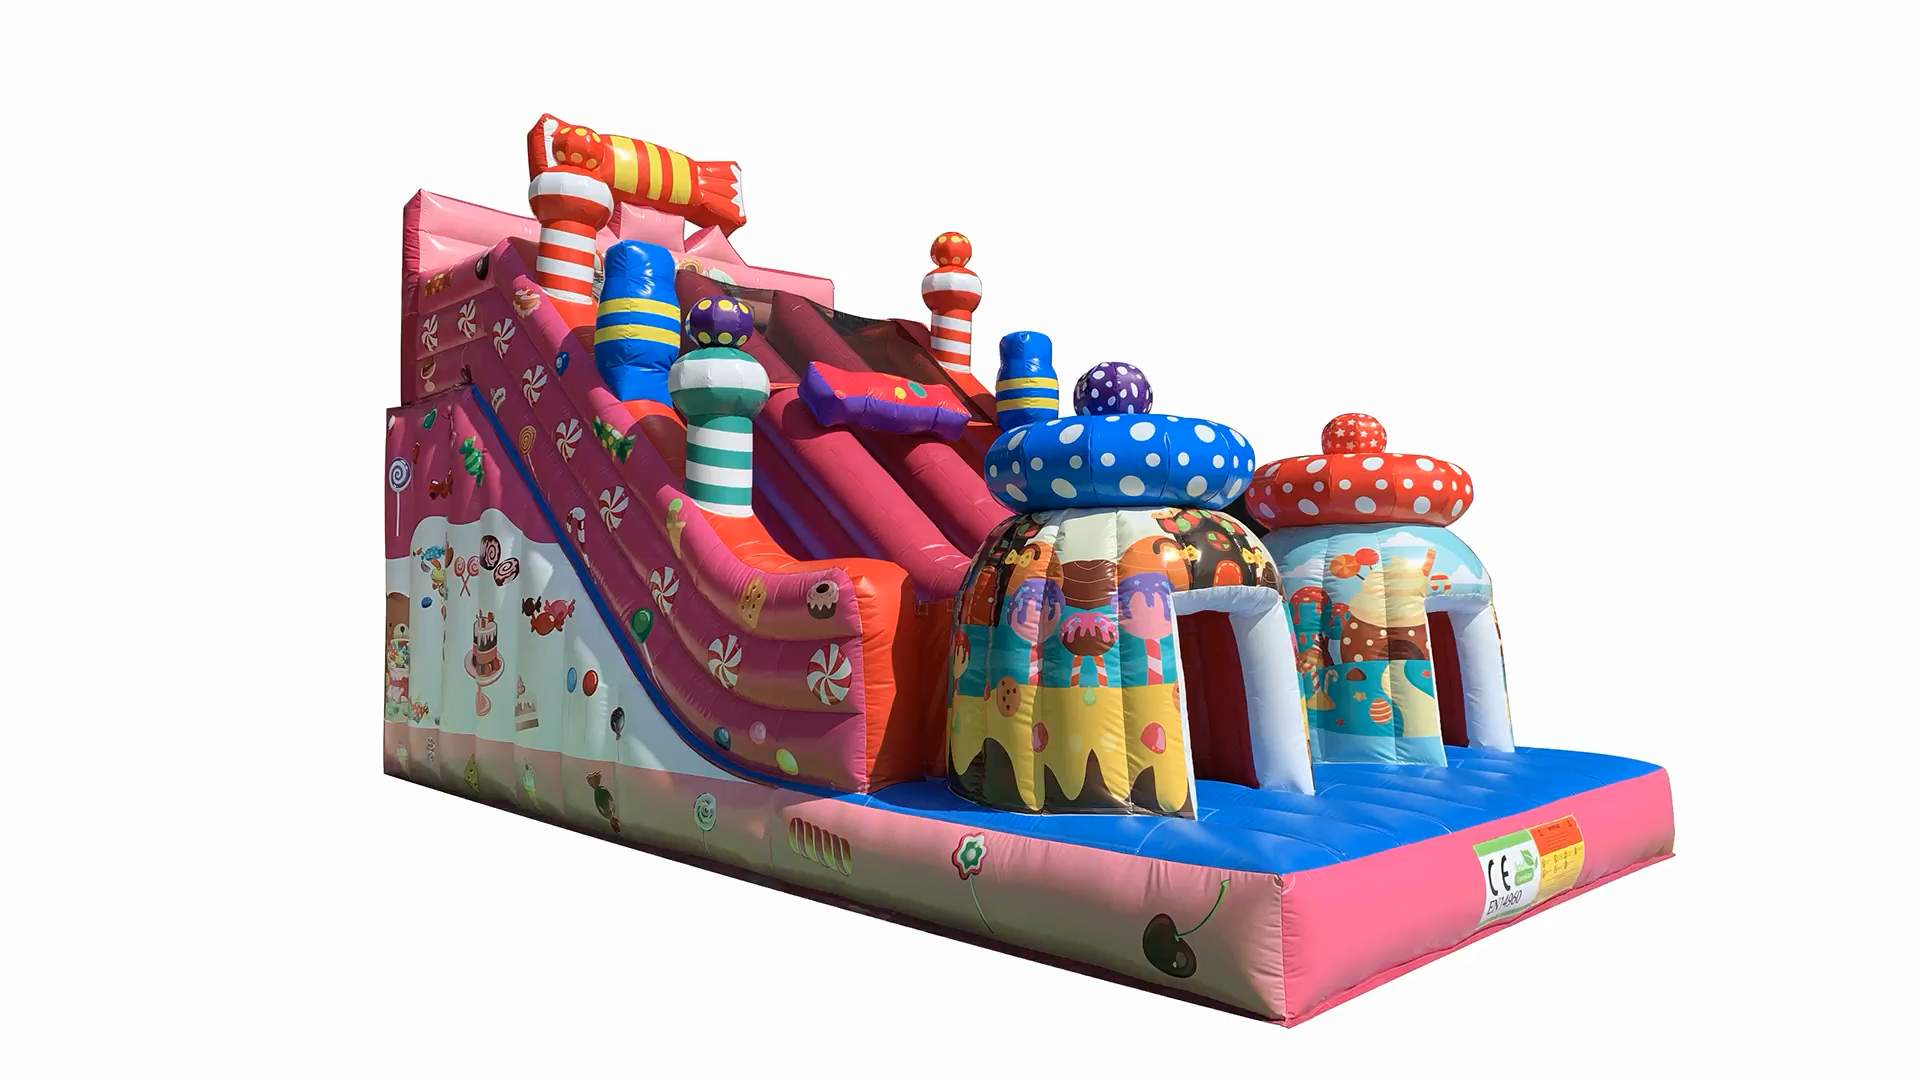 2020 hot sale colorful cheap funny popular inflatable candy bouncy slide for sale outdoor inflatable bouncer games